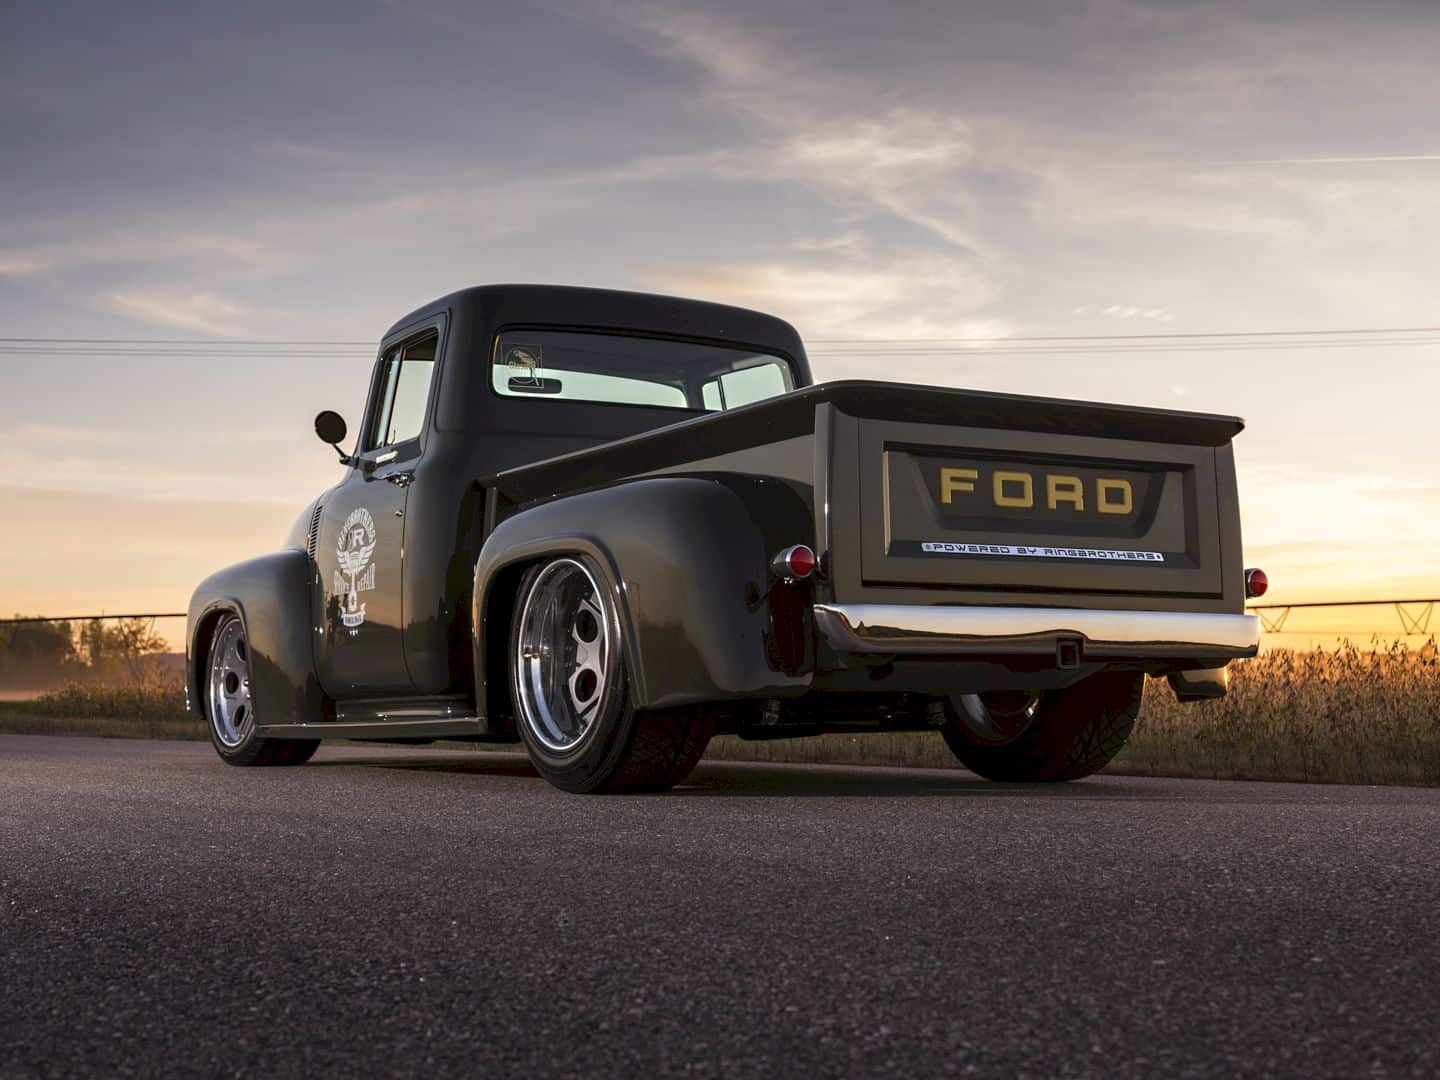 1956-ford-f100 FordDaily.jpg